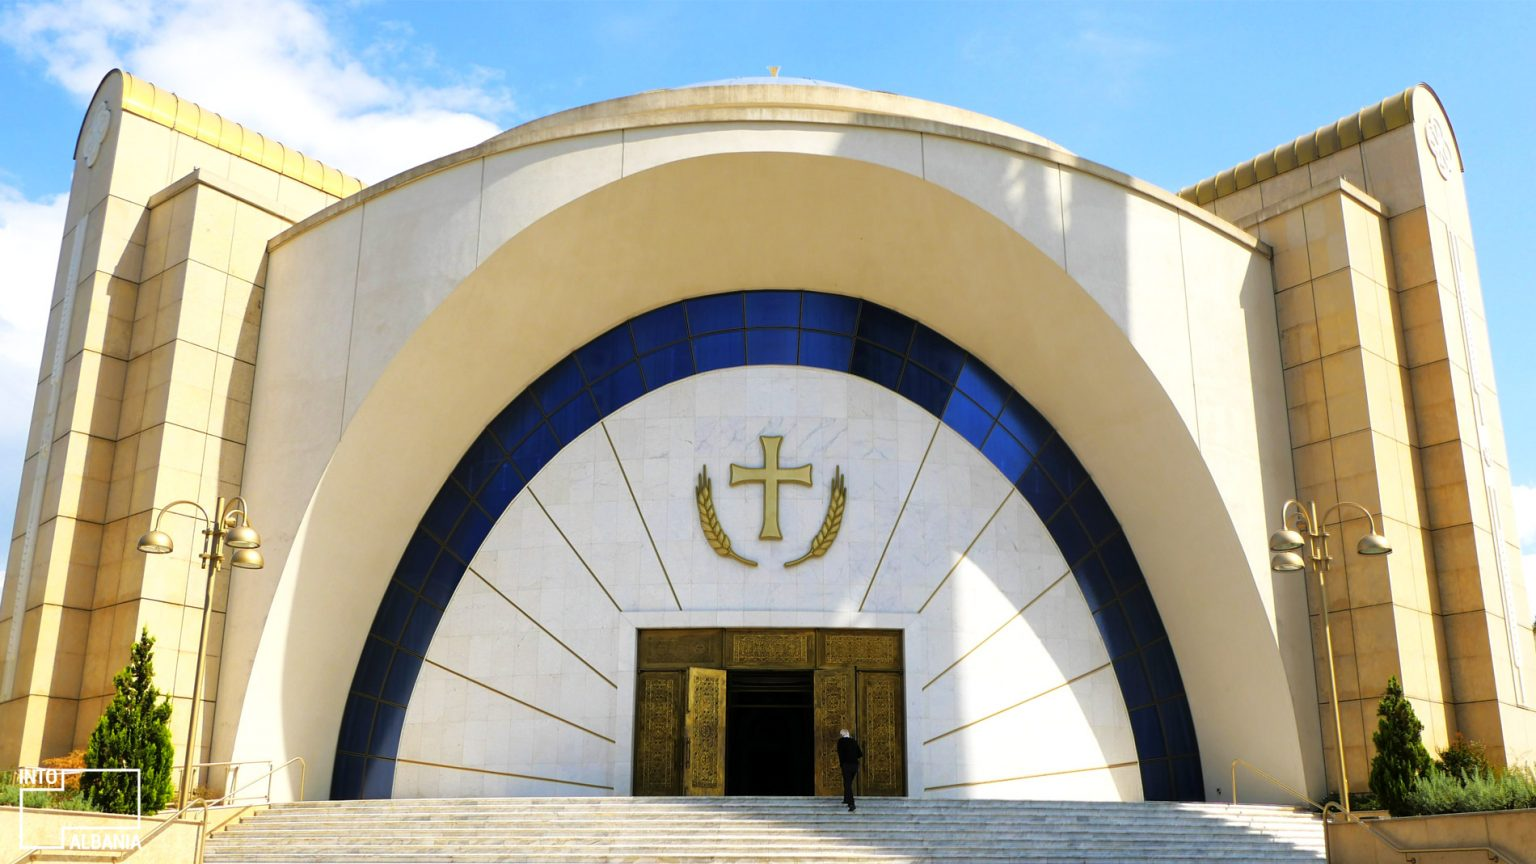 Resurrection of Christ Orthodox Cathedral entrance, photo by IntoAlbania.